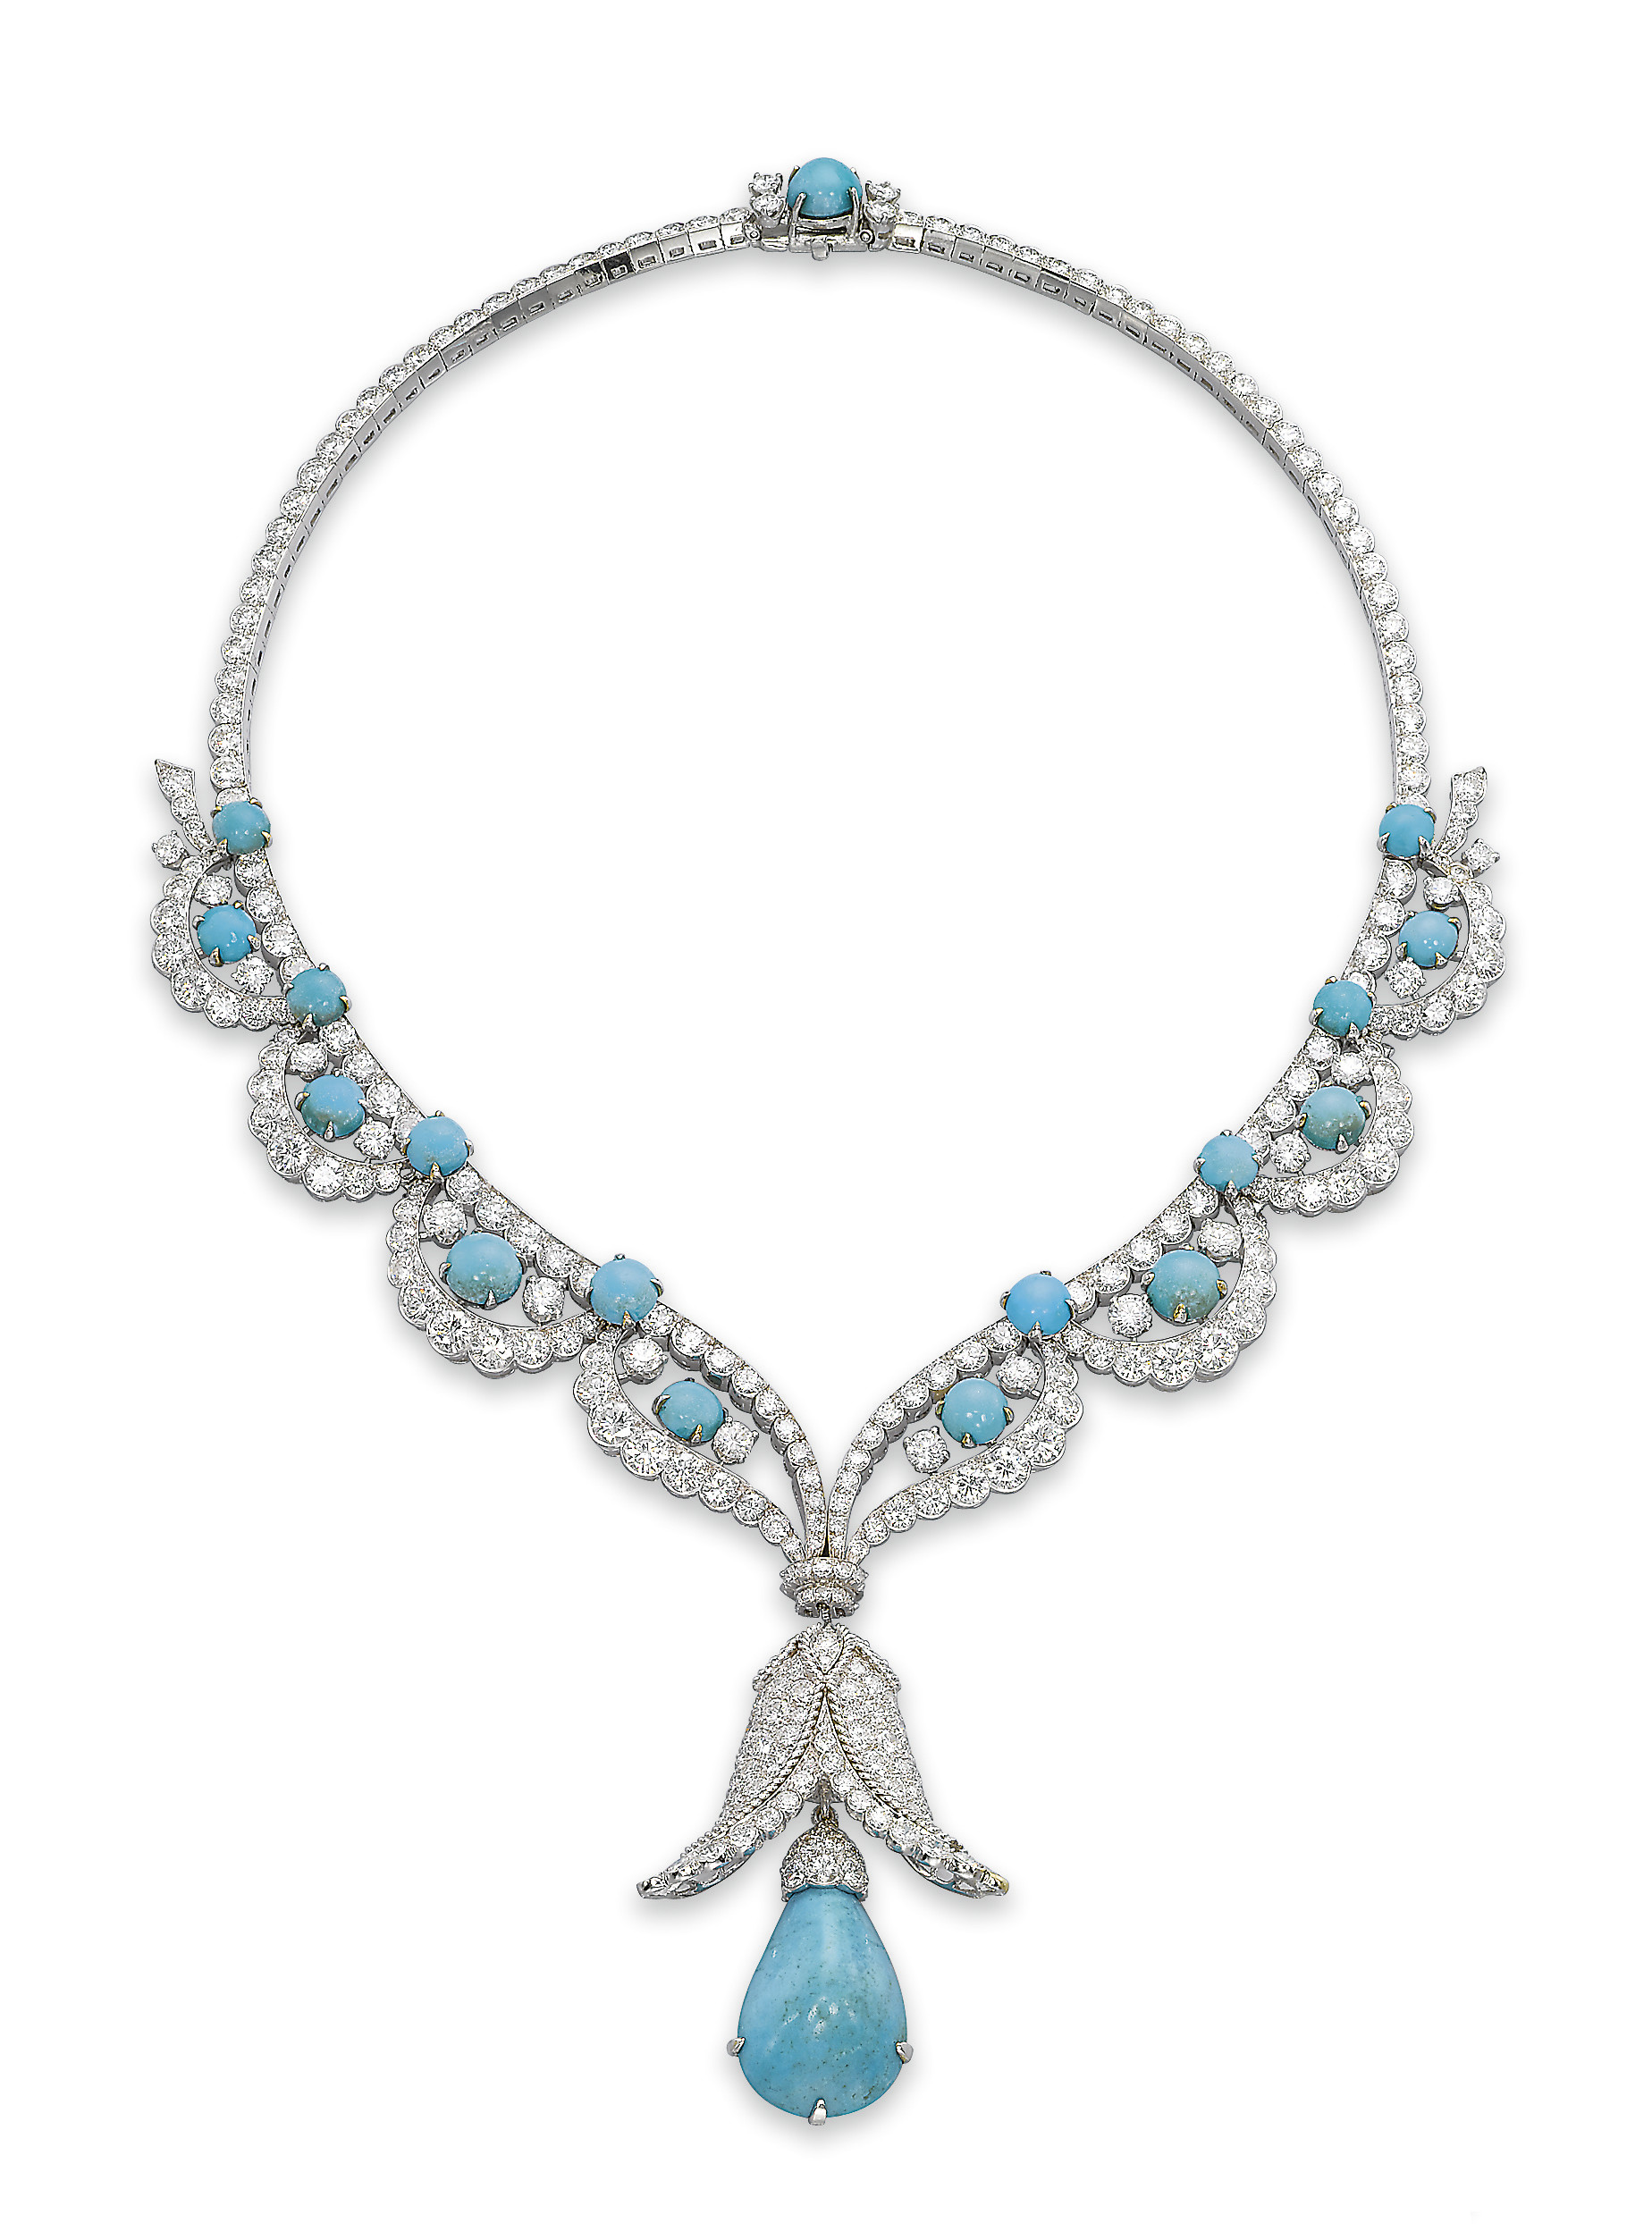 A CHARMING TURQUOISE AND DIAMOND NECKLACE, BY VAN CLEEF